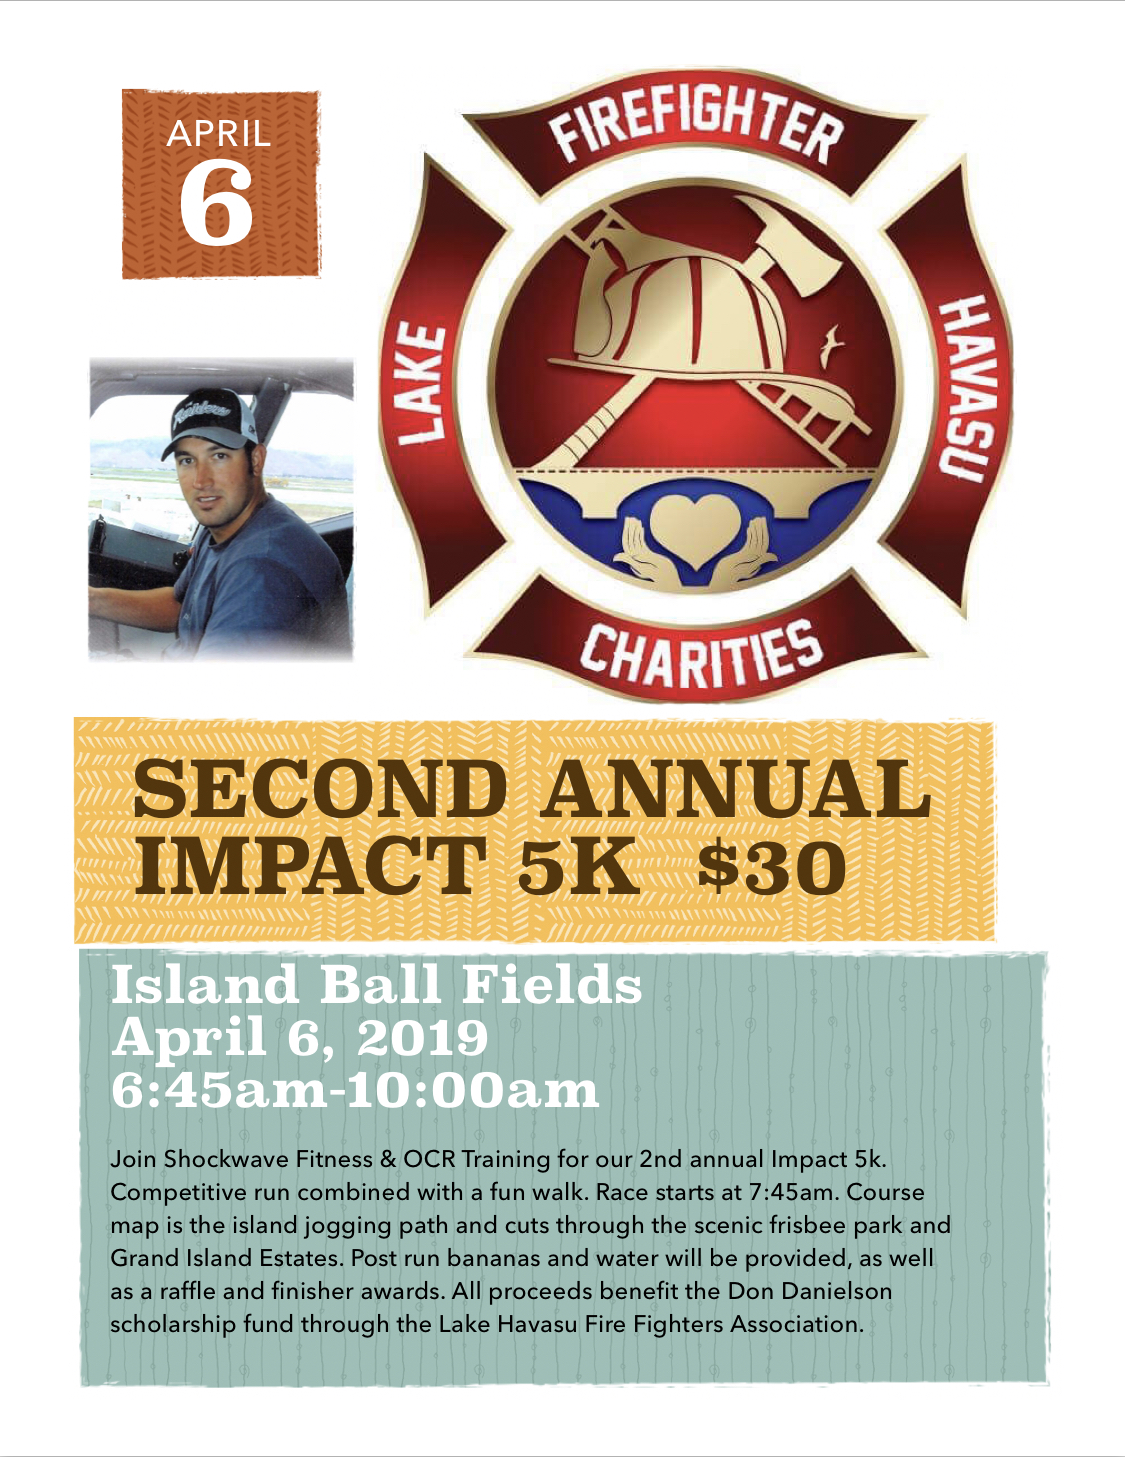 Second Annual Impact 5k